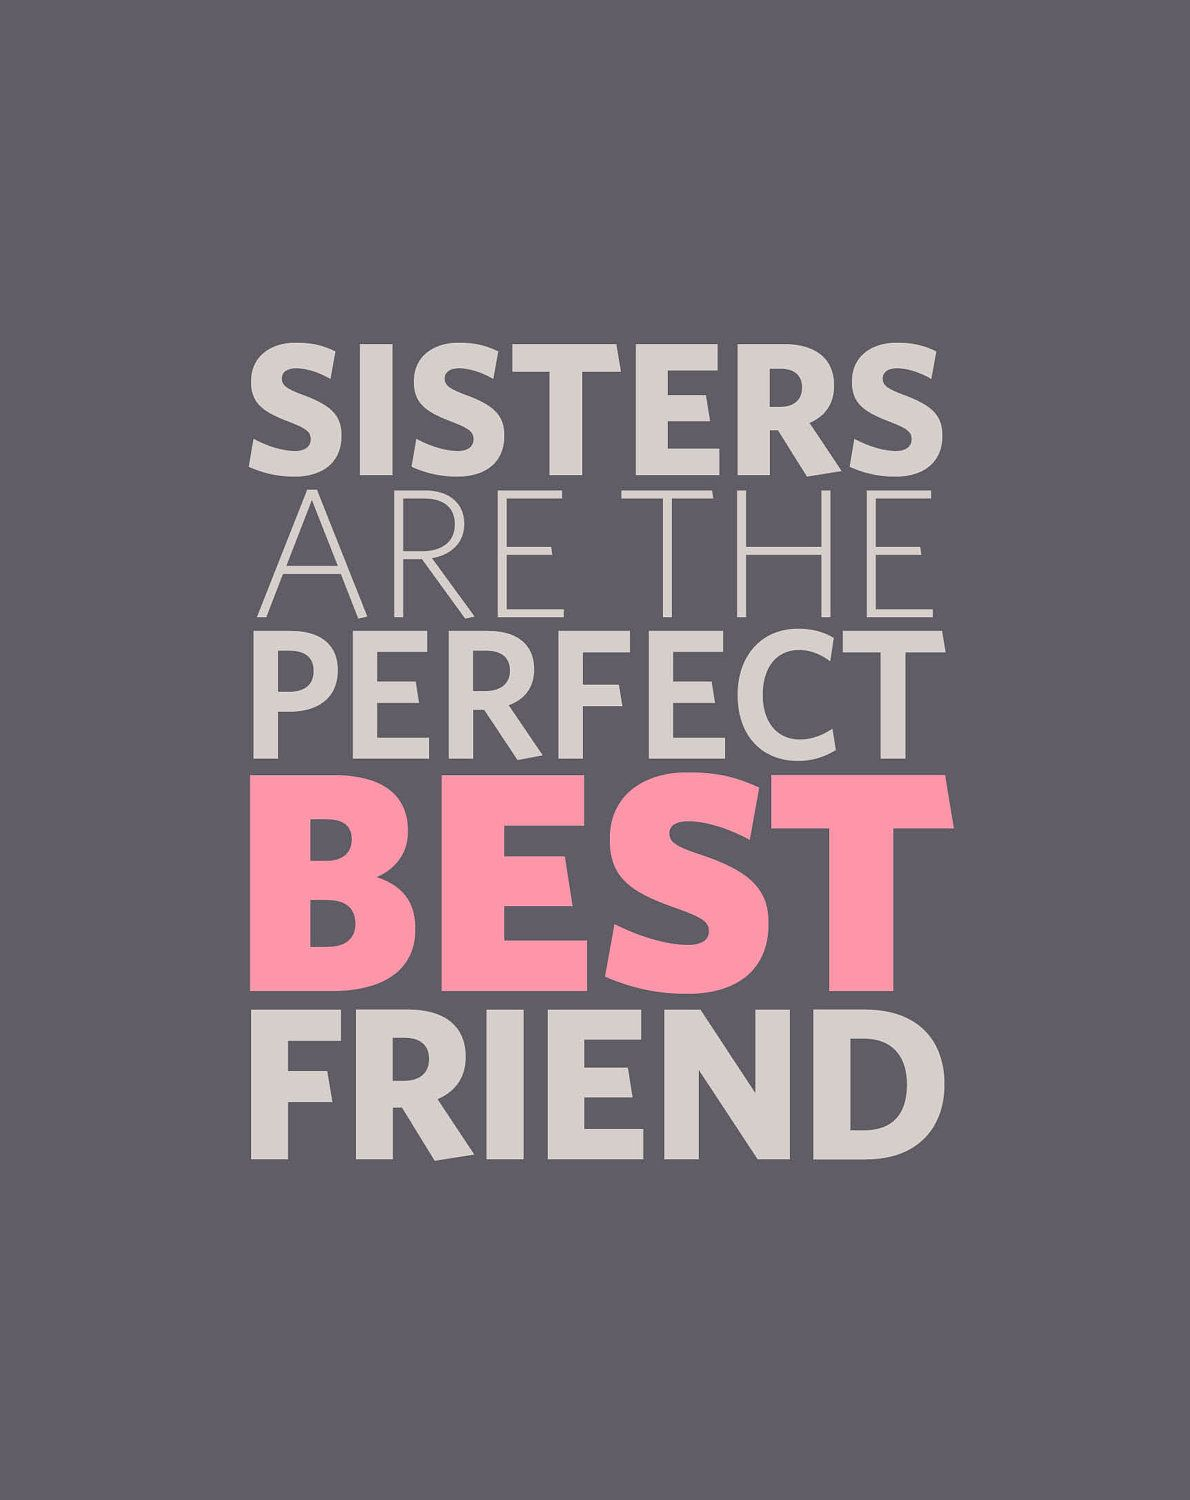 i love my sister my best friend a Shoulder to lean on to talk things out A pick me up person always love unconditional don t judge others